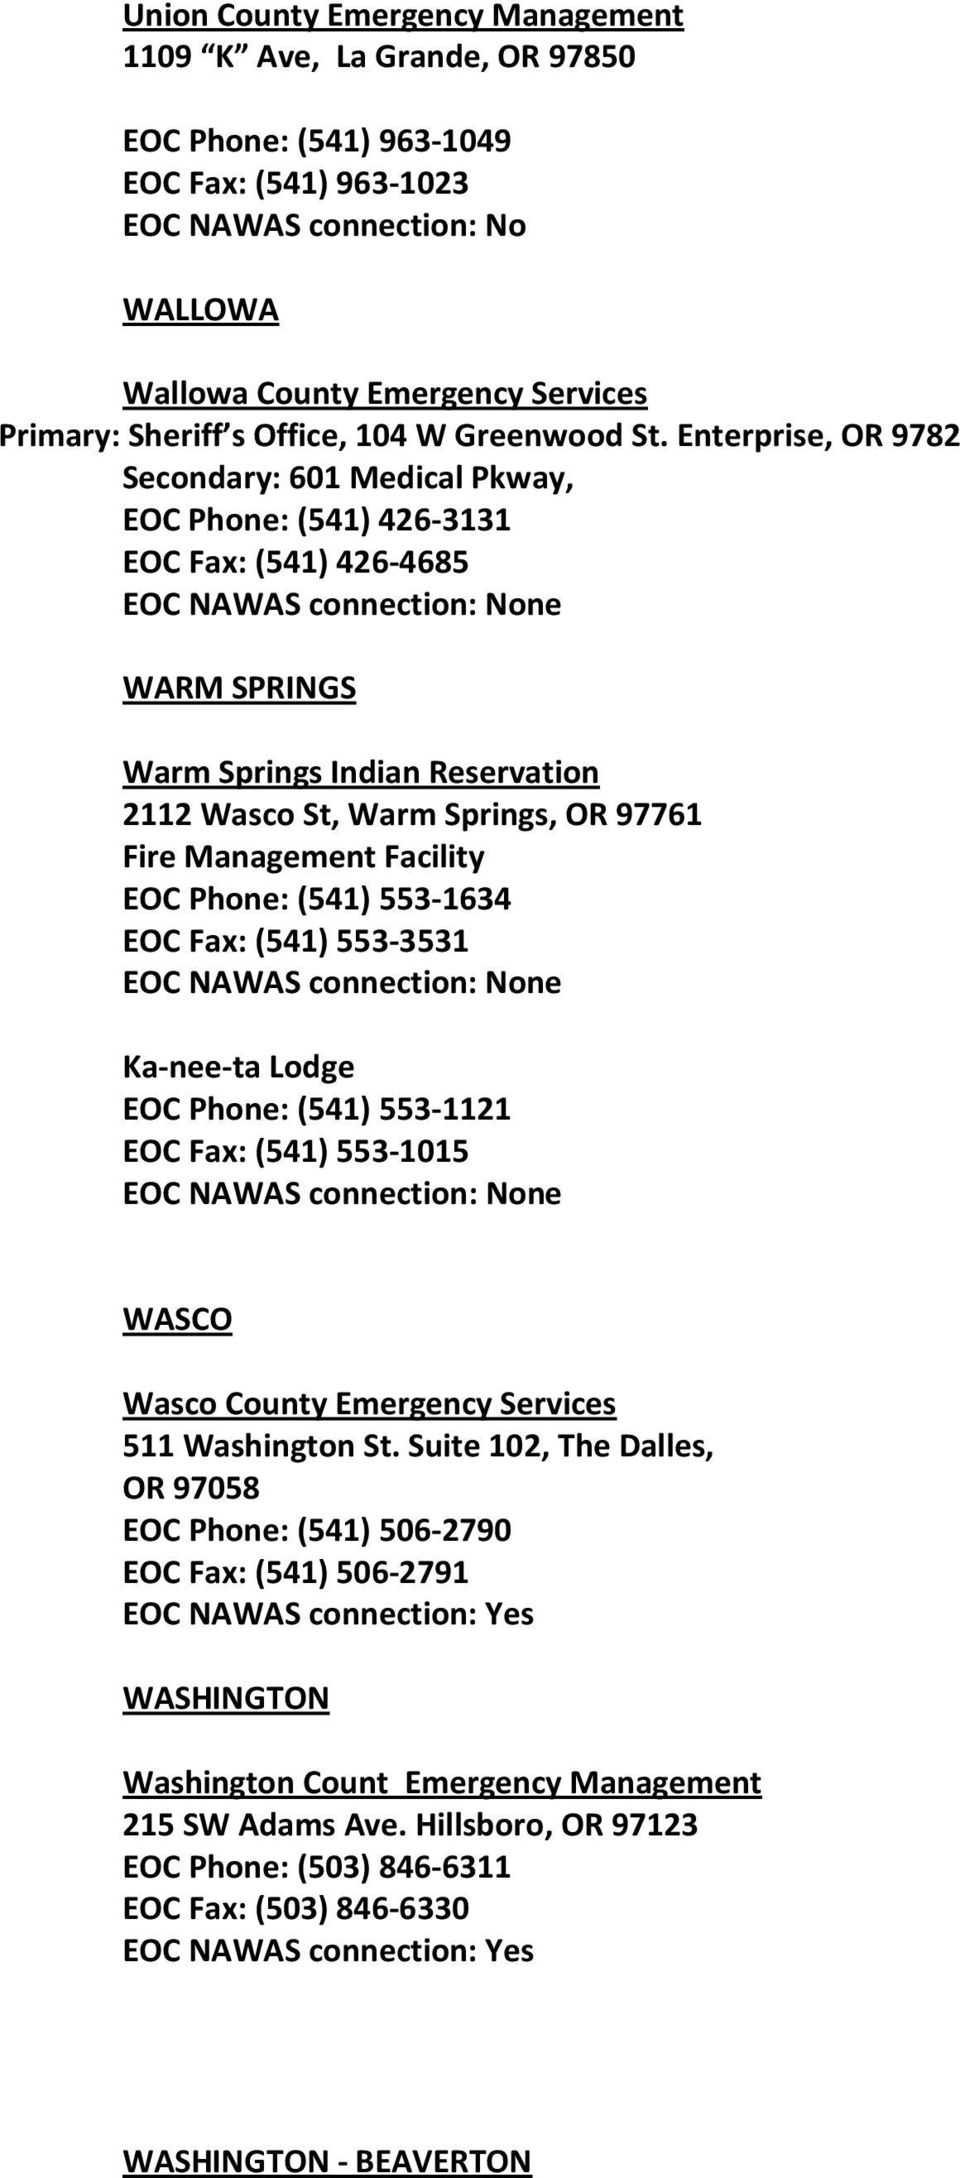 Enterprise, OR 9782 Secondary: 601 Medical Pkway, EOC Phone: (541) 426-3131 EOC Fax: (541) 426-4685 WARM SPRINGS Warm Springs Indian Reservation 2112 Wasco St, Warm Springs, OR 97761 Fire Management